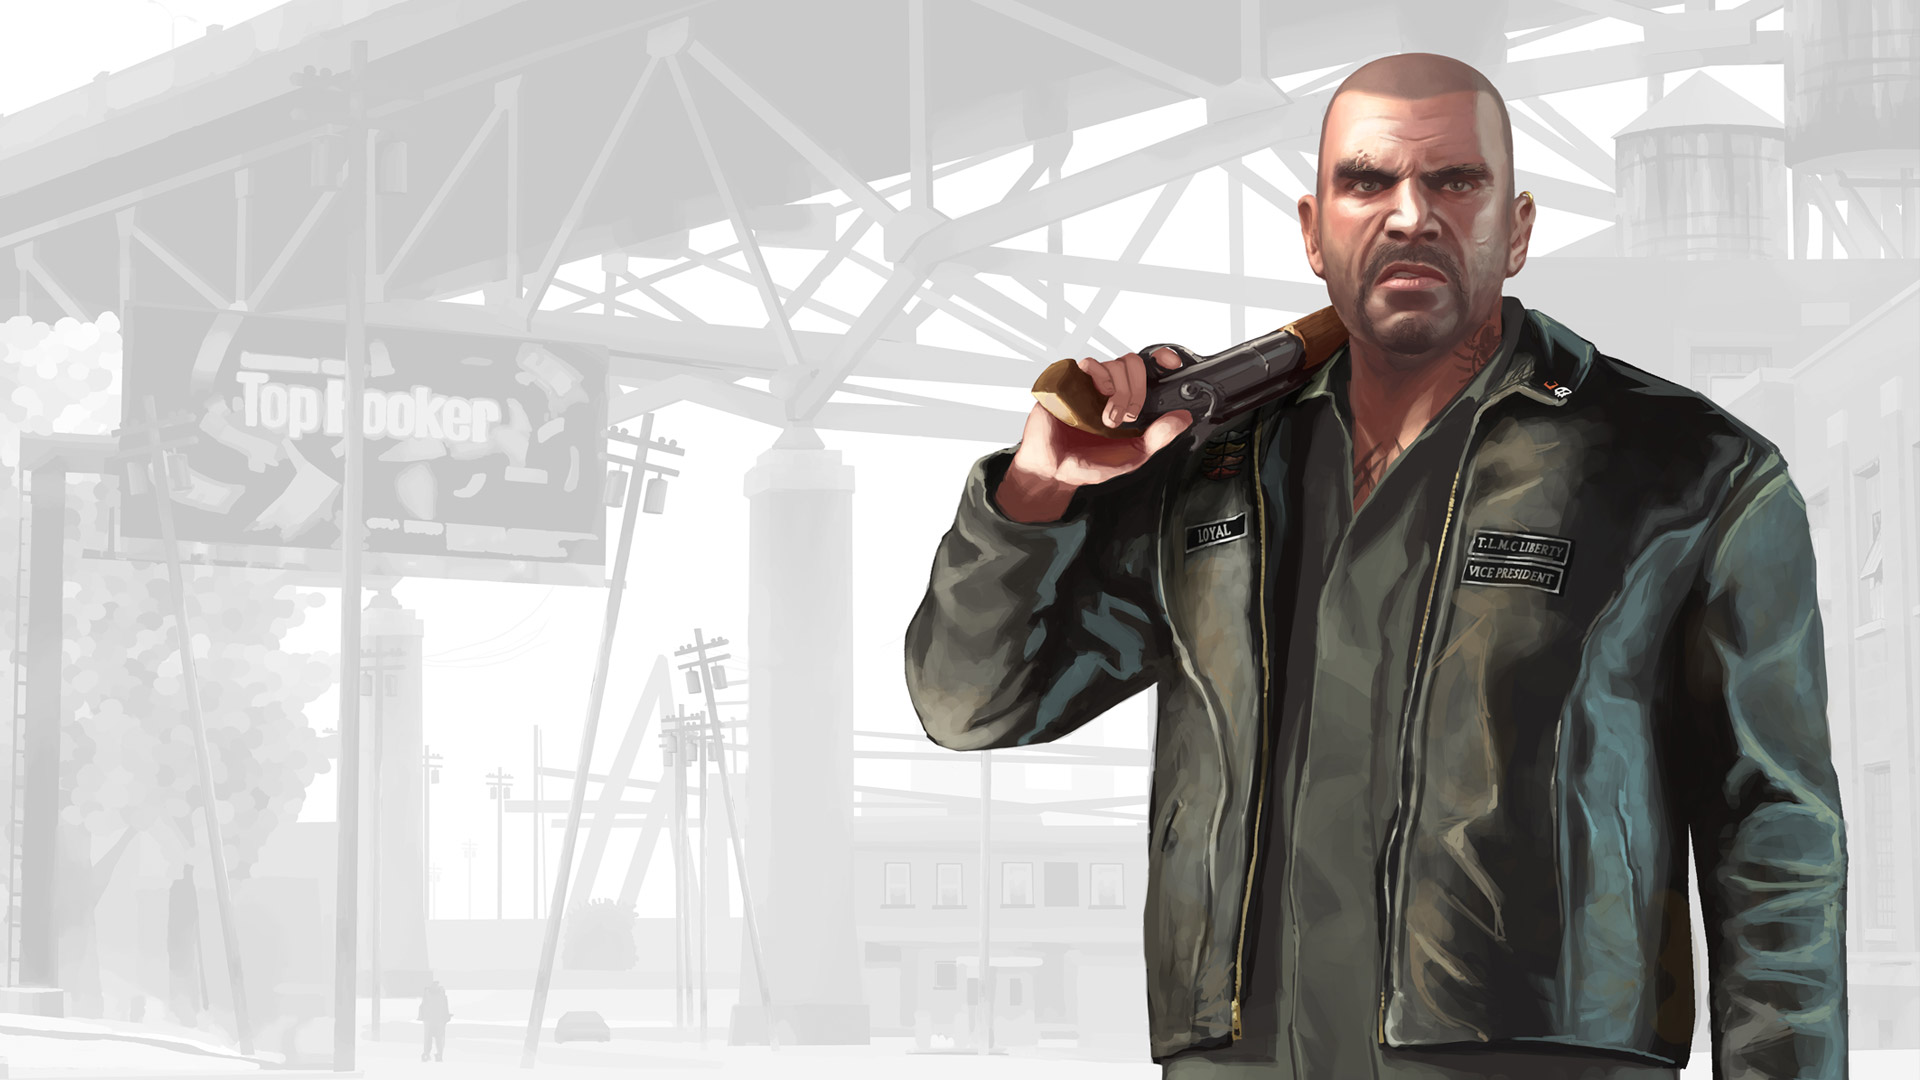 Grand Theft Auto IV Wallpaper in 1920x1080